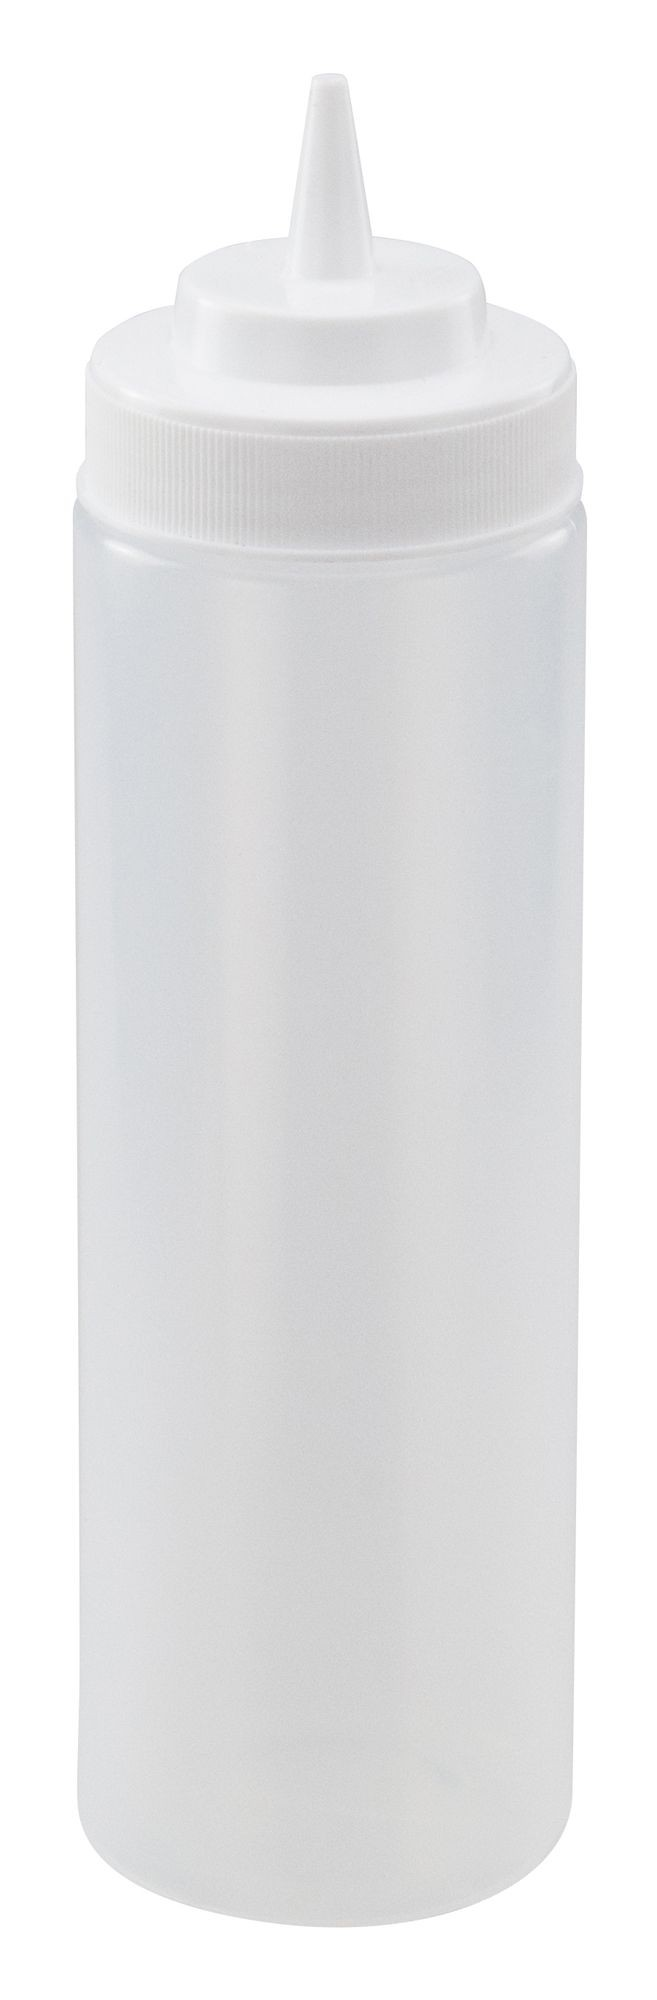 Clear Plastic 24 Oz. Wide-Mouth Squeeze Bottle